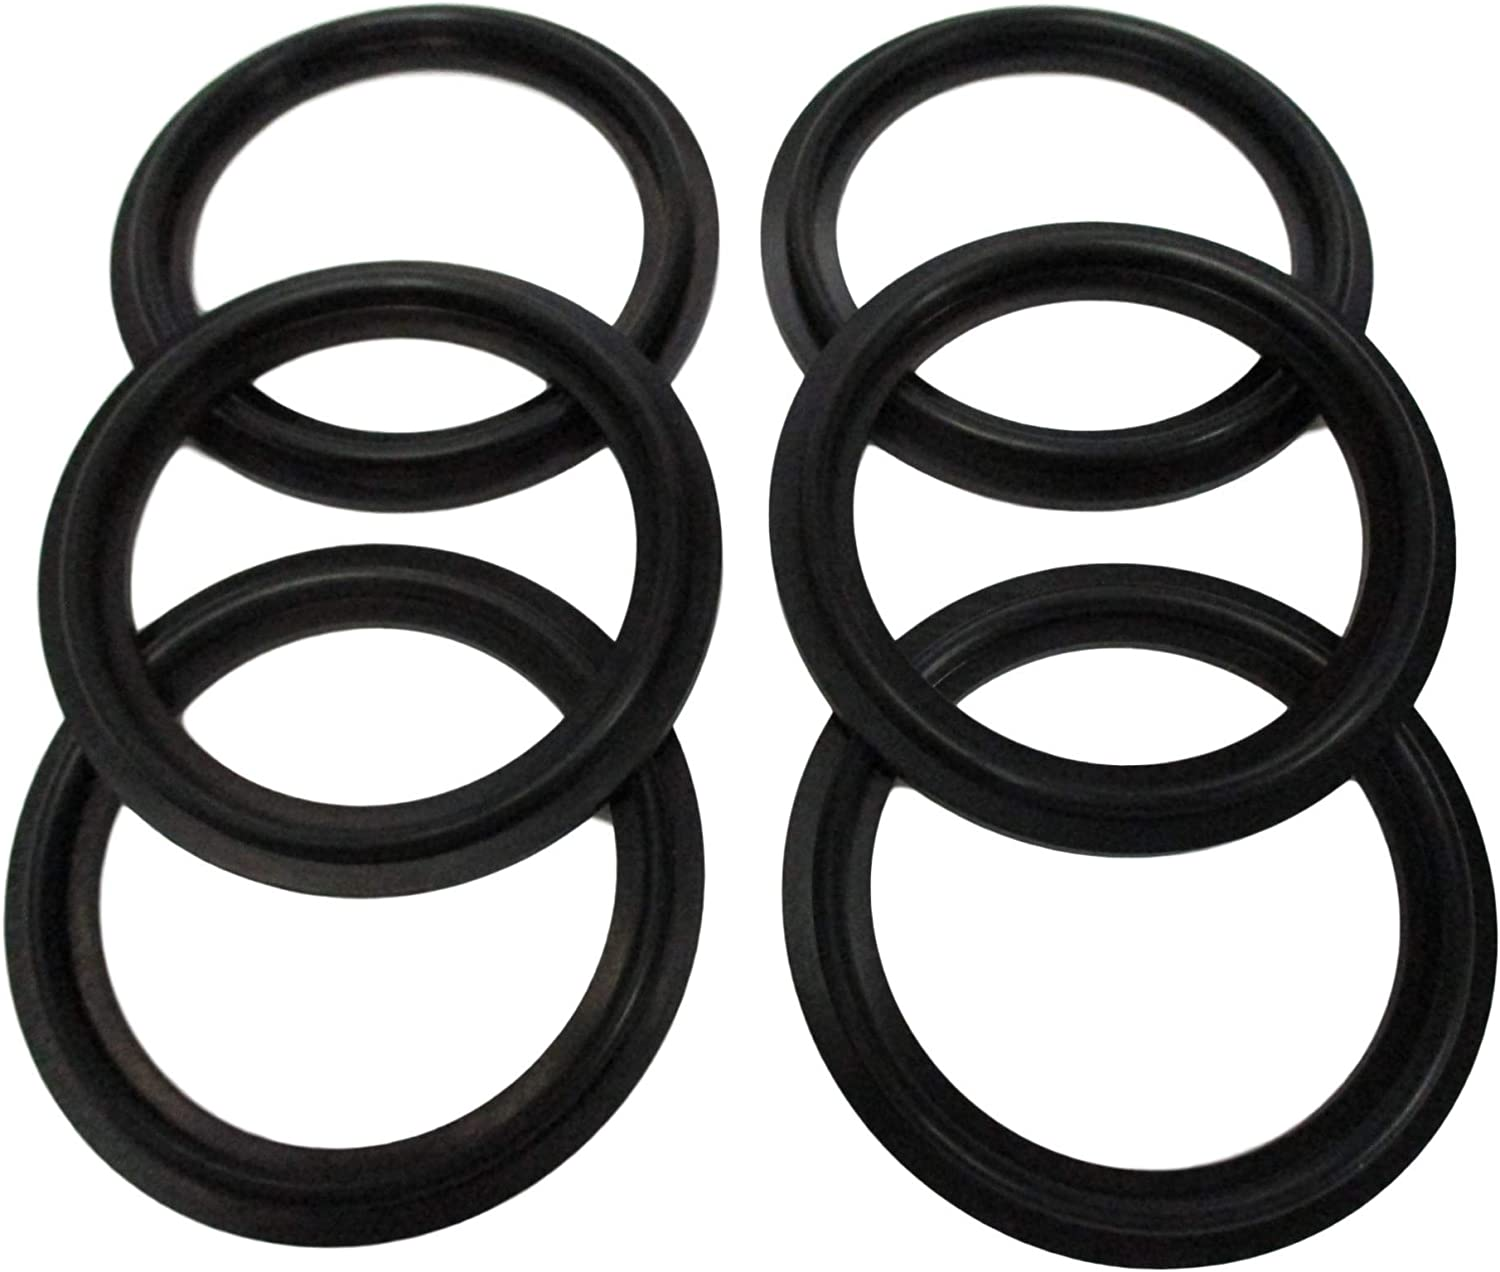 6X 2 Spa Hot Popular Tub Pump Heater Union Video to Gasket How with Max 46% OFF